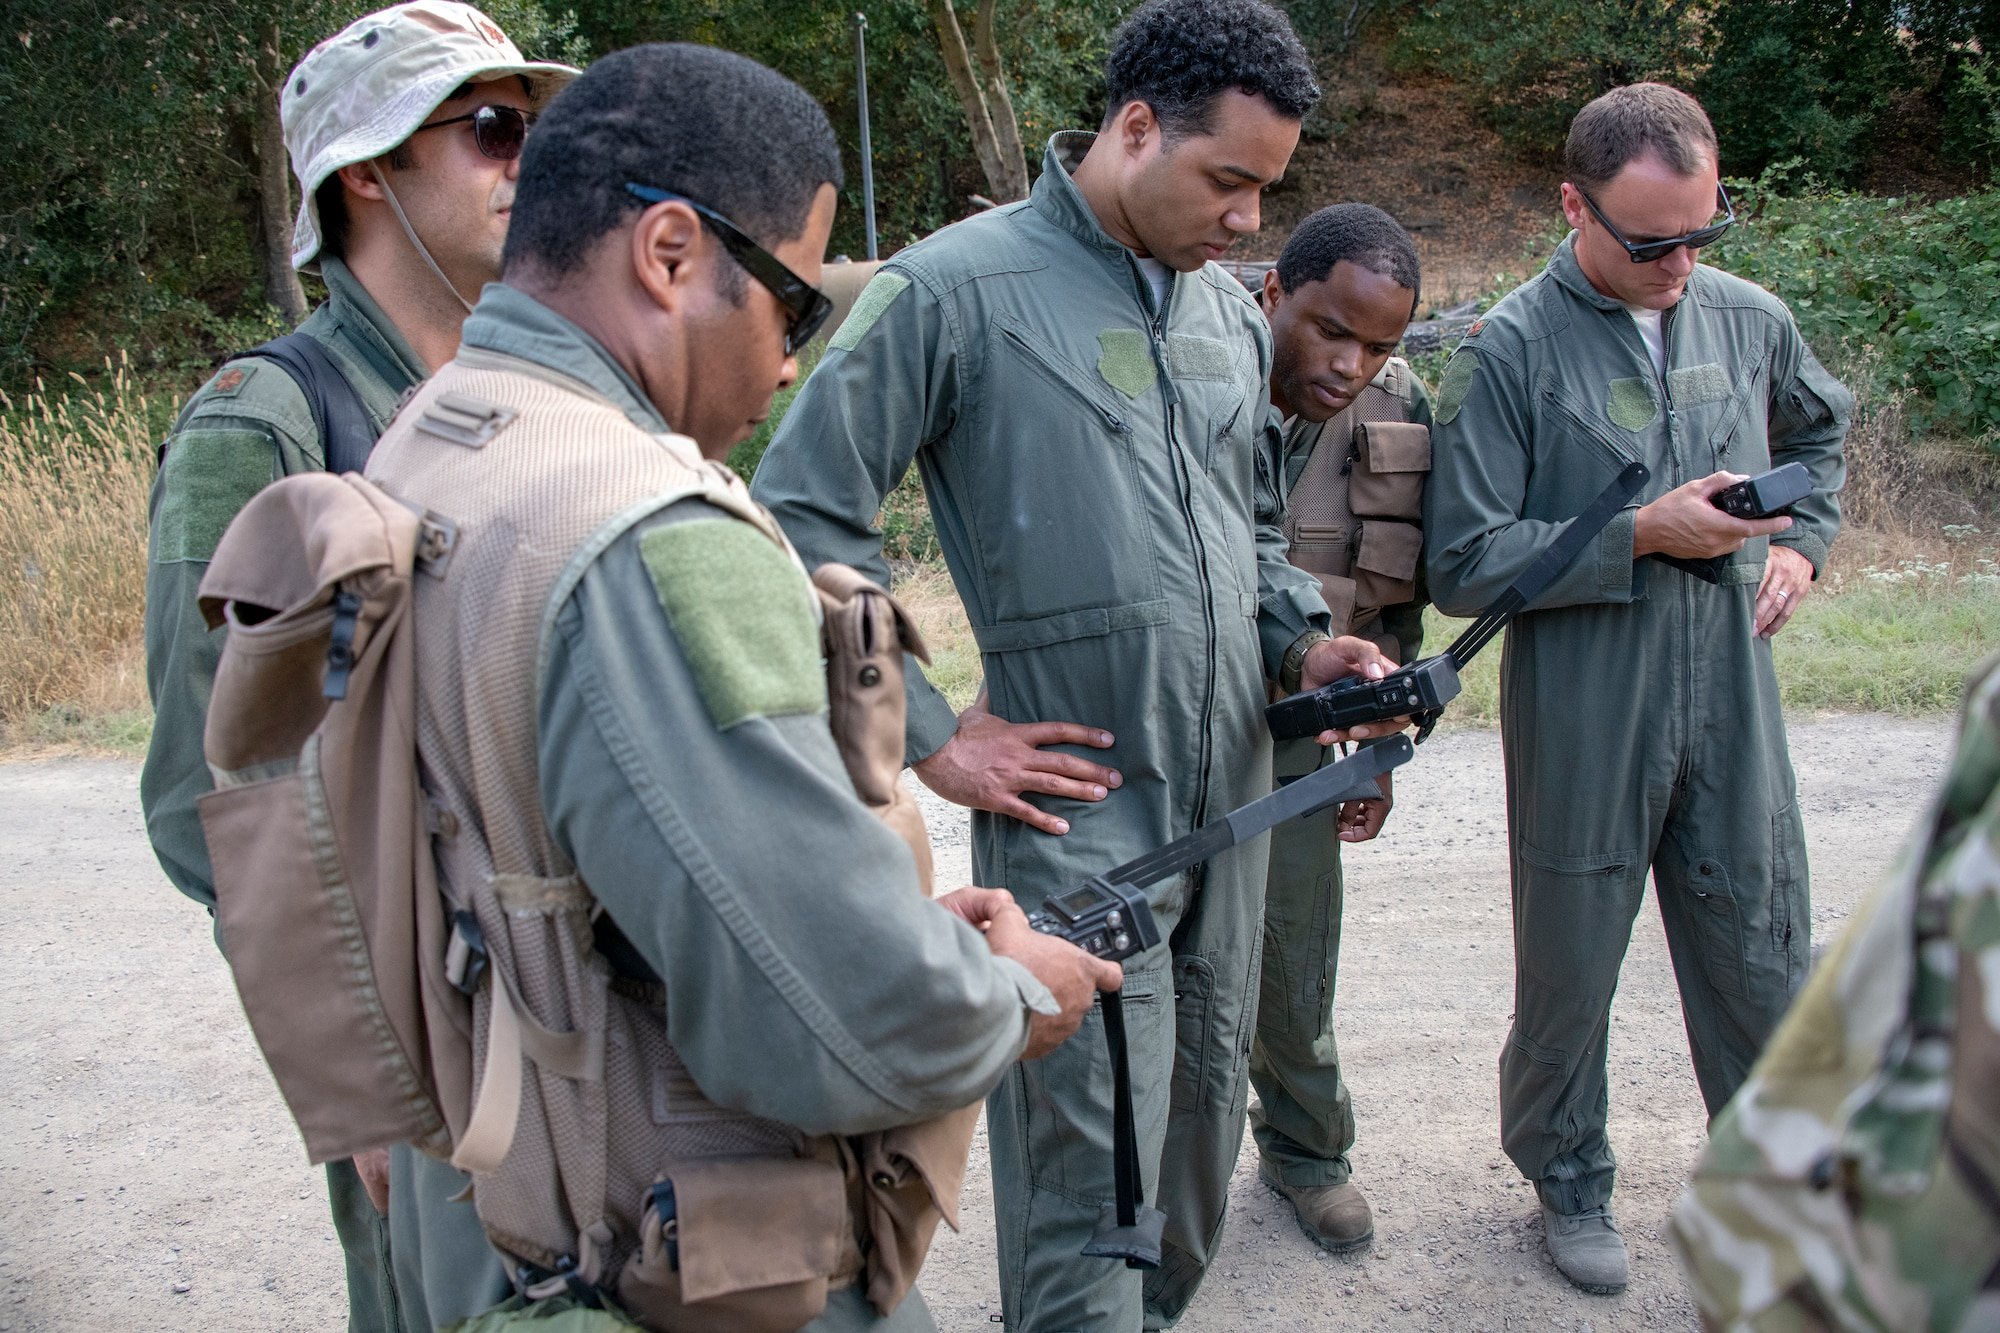 U.S. Air Force aircrew members study communication devices utilized during a Survival, Evasion, Resistance and Escape training exercise that will last well into the evening, Aug. 5, 2019, in a remote area near Travis Air Force Base, California. SERE instructors conduct the training to improve aircrew's skill sets and update them on new techniques, procedures and technologies. (U.S. Air Force photo by Heide Couch